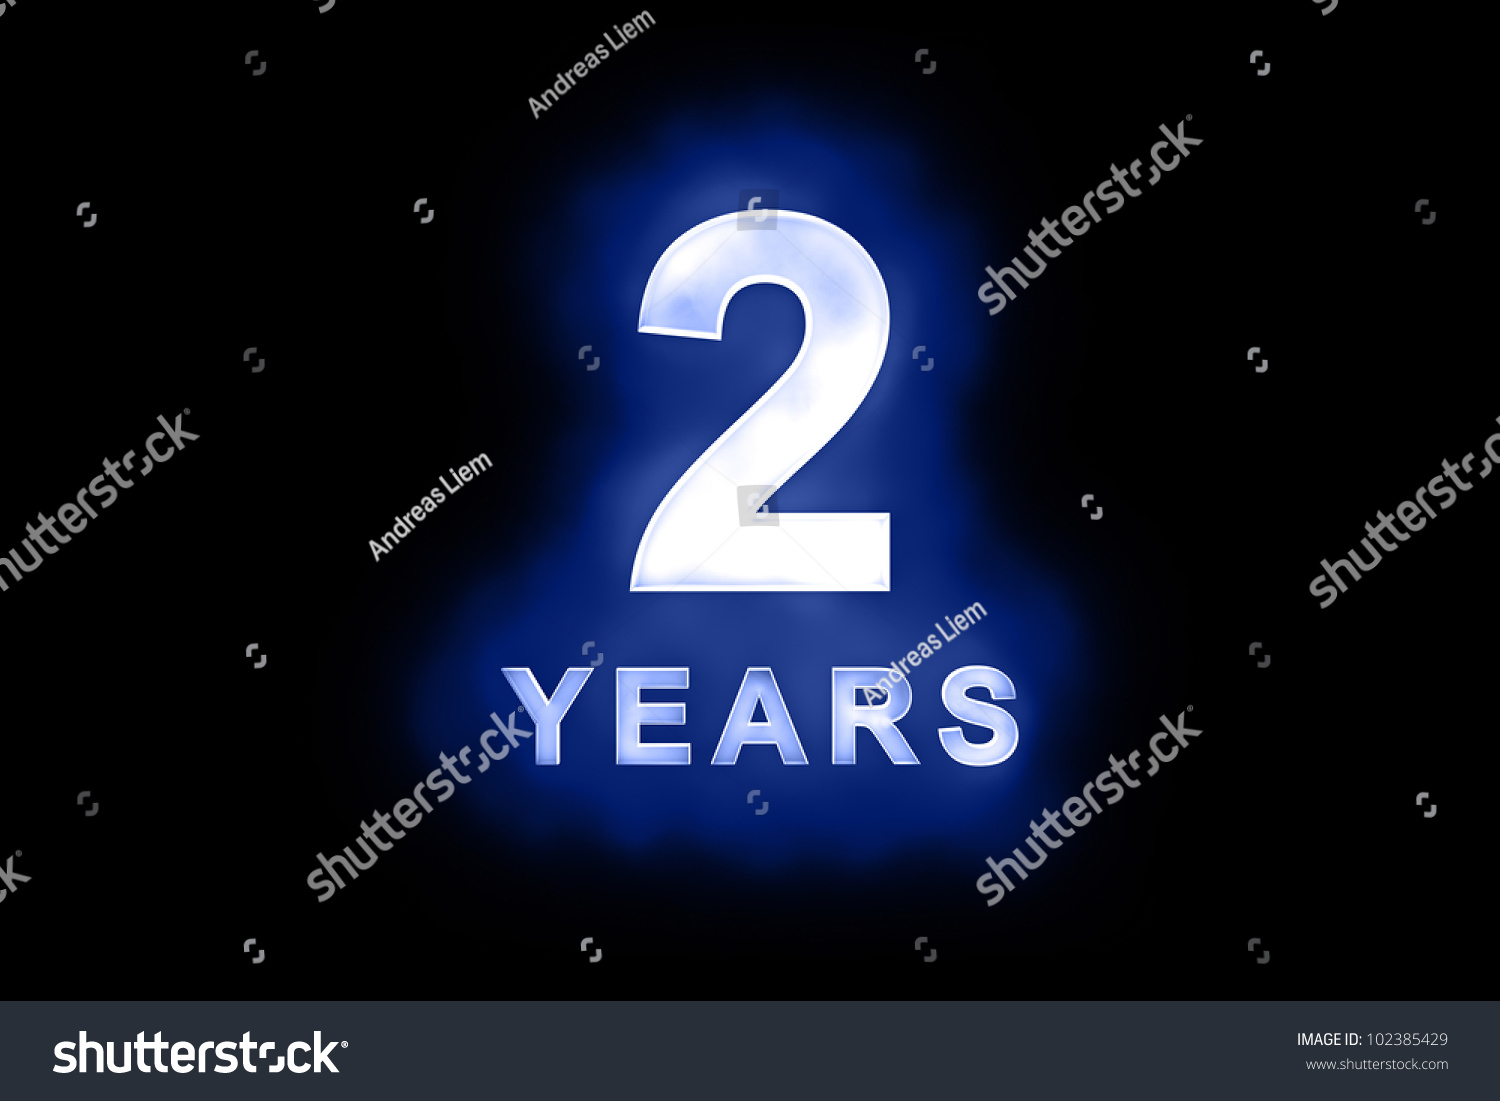 Royalty Free Stock Illustration of 2 Years Glowing White